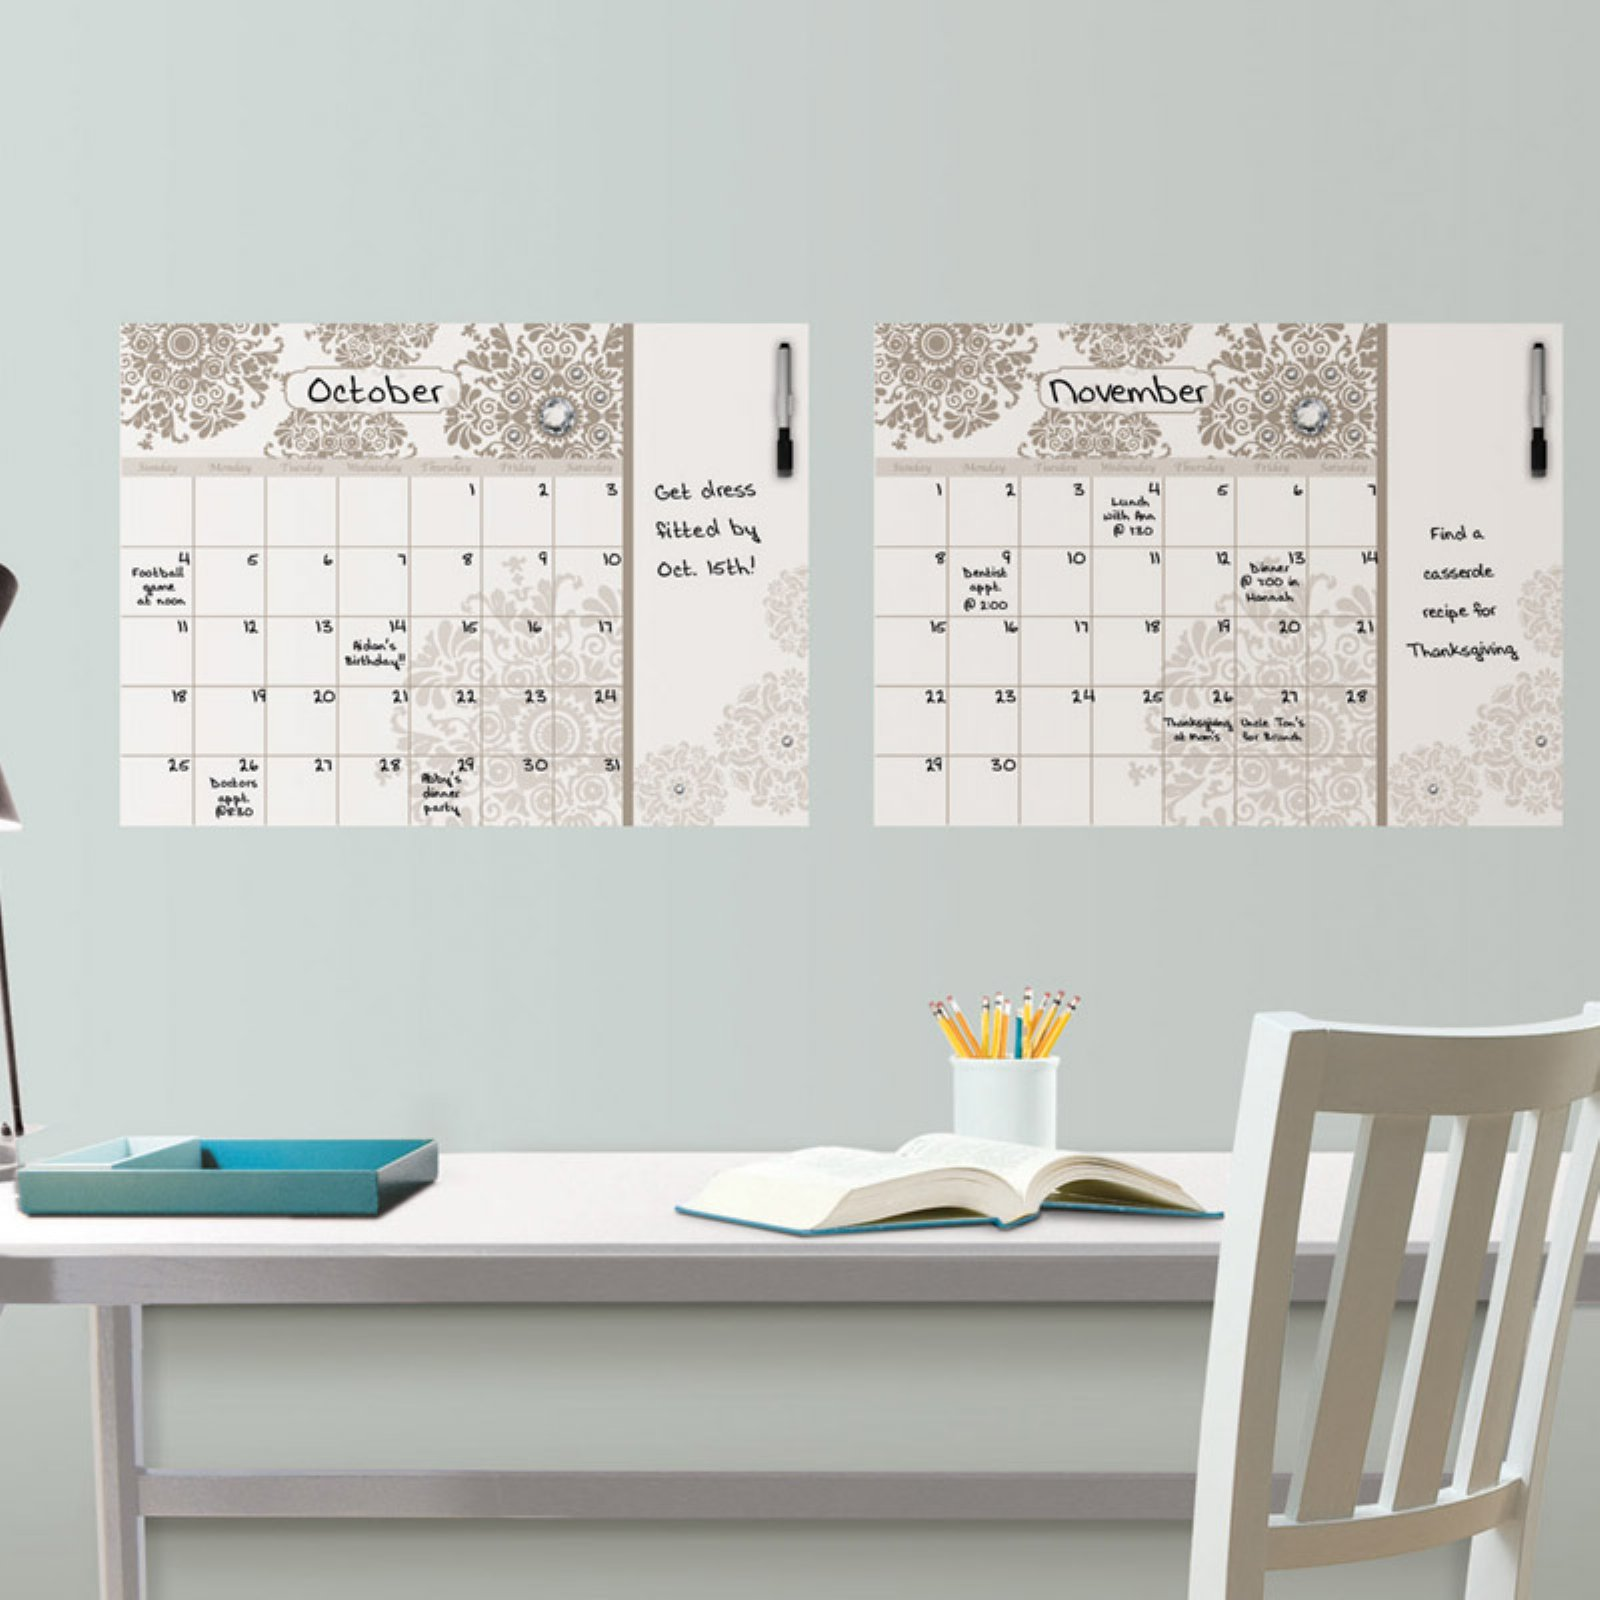 Brewster Kolkata Monthly Calendar With Notes Wall Decal - Set of 2